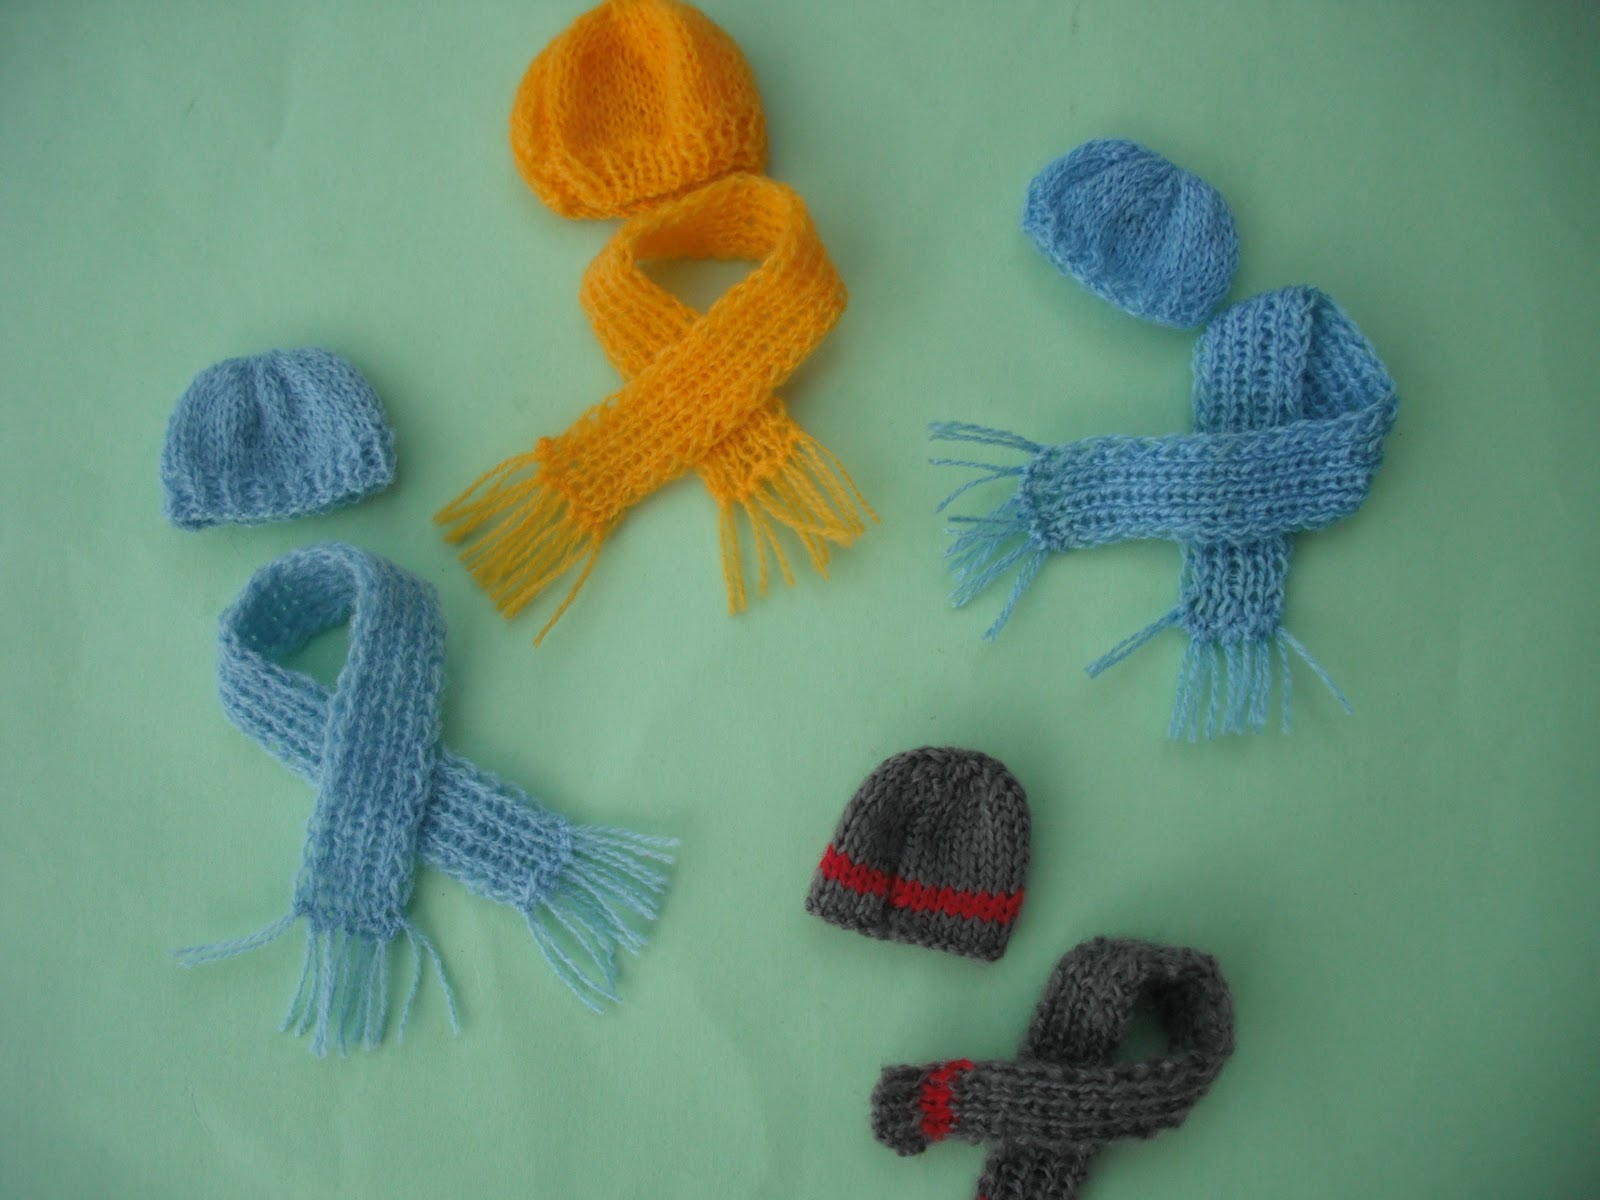 Free Knitting Patterns For Dolls House : bitstobuy: FREE GIFT dolls house 1:12 scale miniature knitted hat and scarf i...